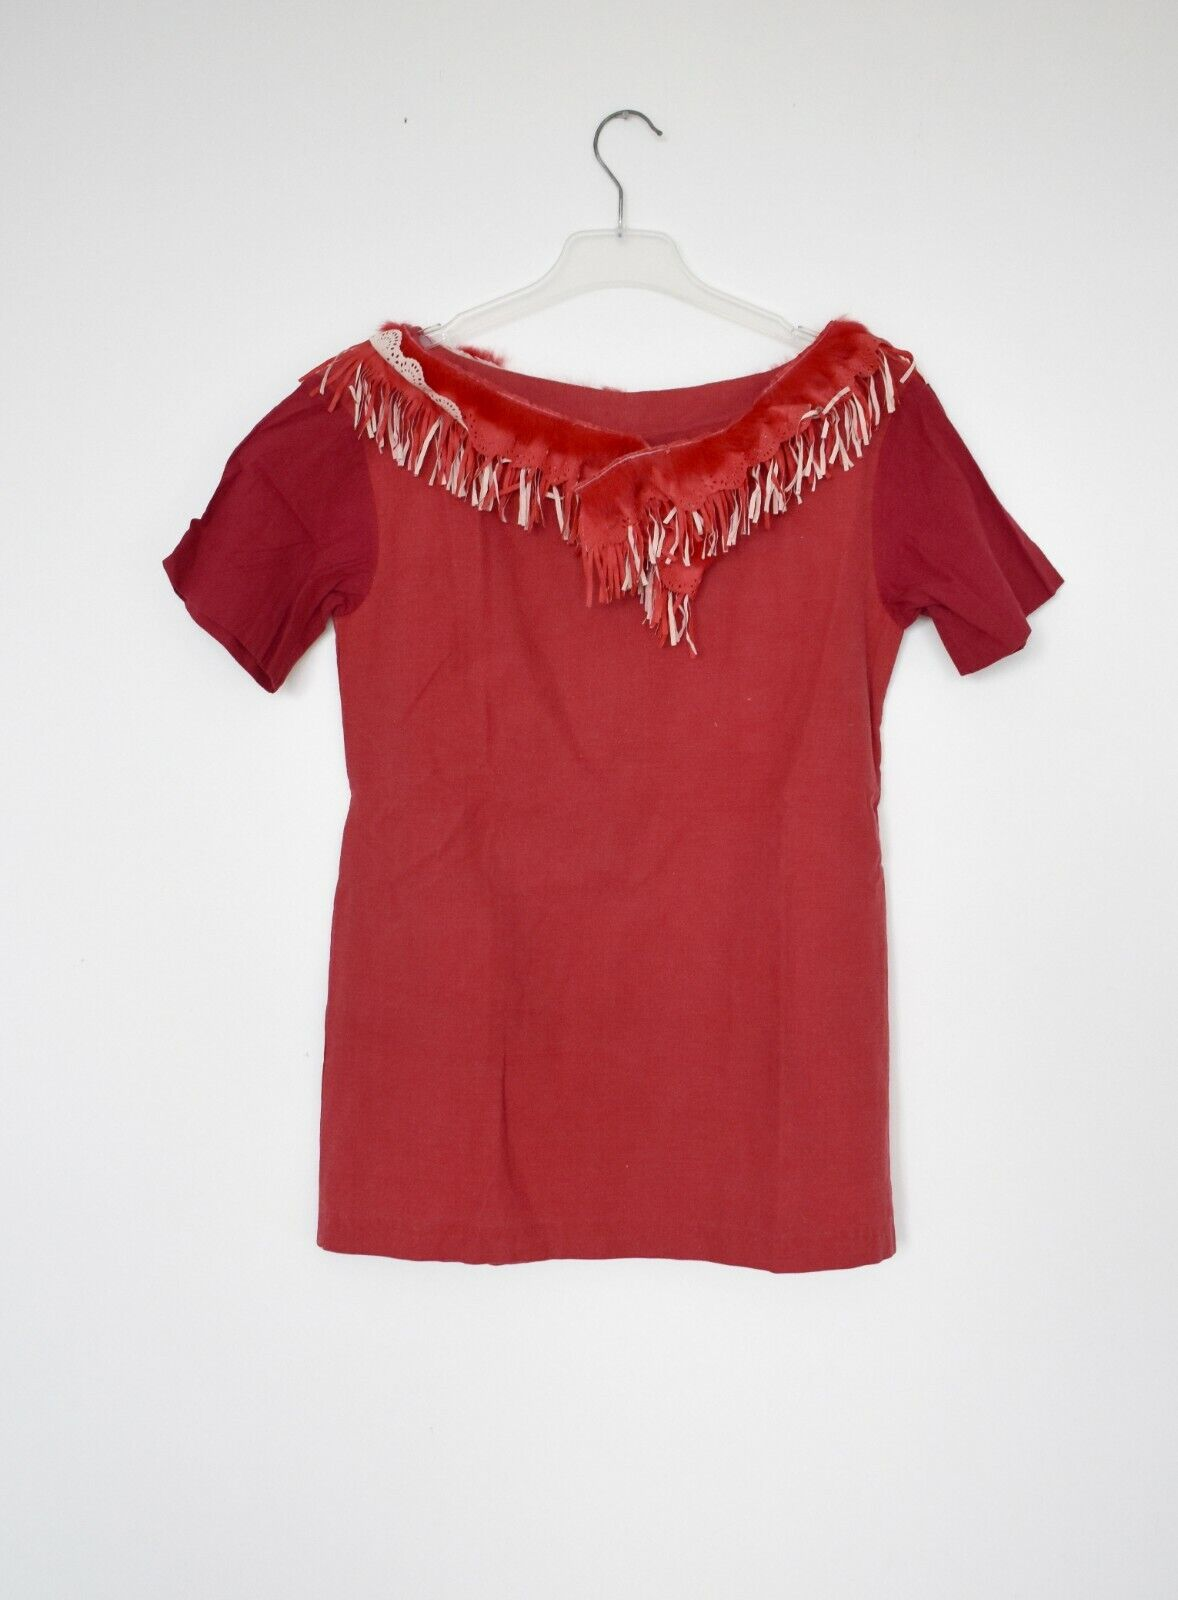 3676dbd0b34d RED TOP fur fringe top MARNI style amazing cotton ausgefallenes top red mit  fell